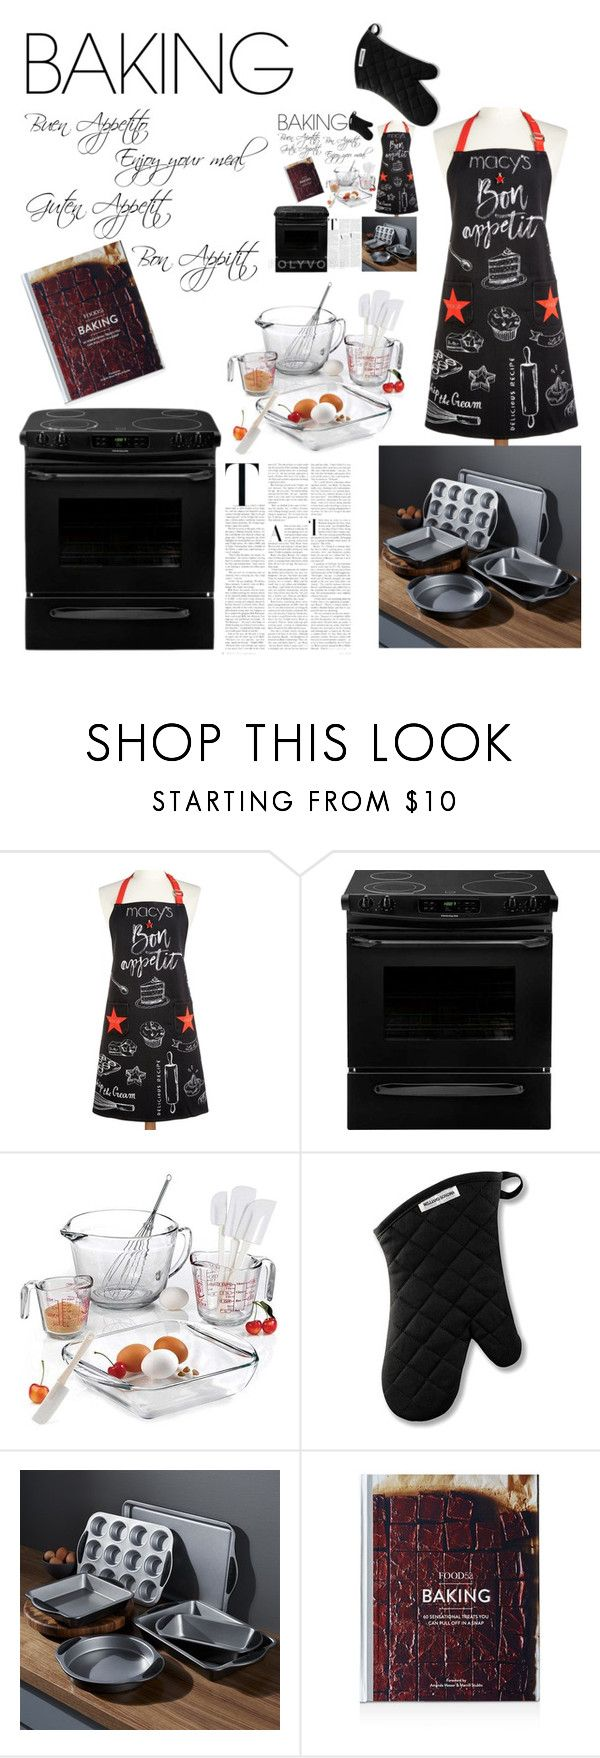 """""""this is not a joke believe me please I had an account called milkyrose but I forgot my password and it would be nice if you follow my new one"""" by milkyrosu ❤ liked on Polyvore featuring interior, interiors, interior design, home, home decor, interior decorating, Frigidaire, Anchor Hocking, Williams-Sonoma and Crate and Barrel"""